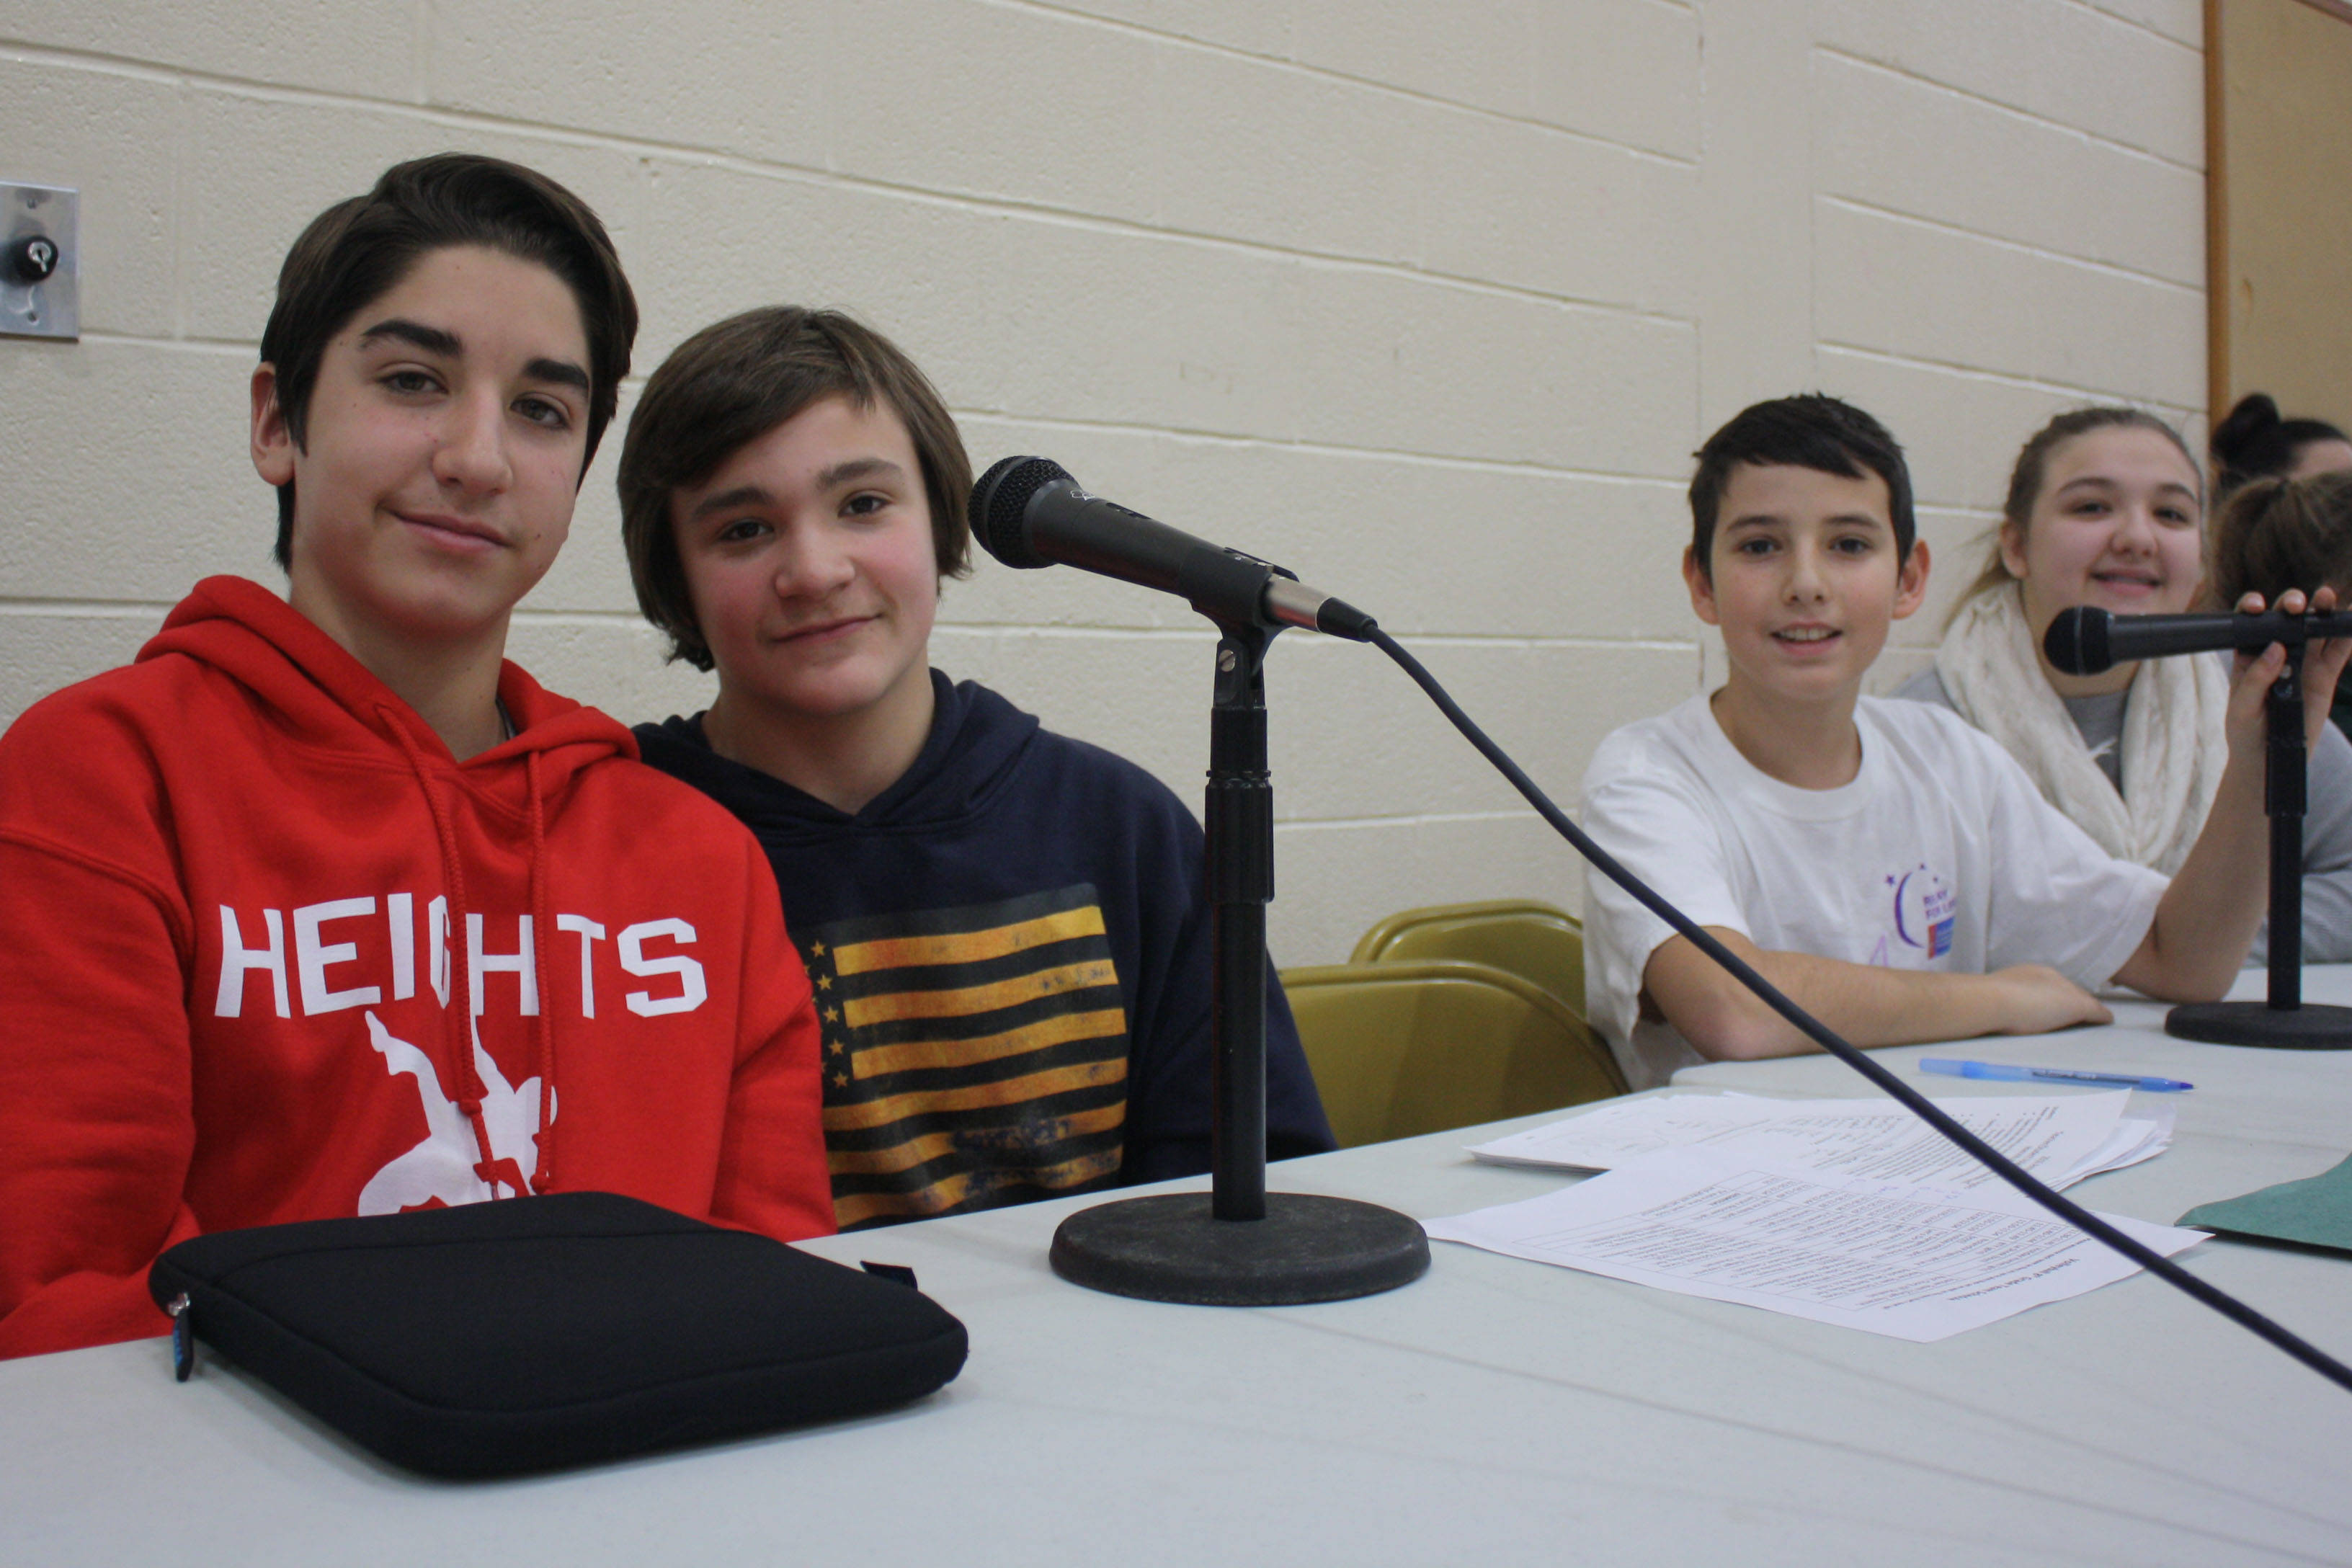 35e156af8f51b51711d5_CMS_Volleyball_Game_Announcers.jpg